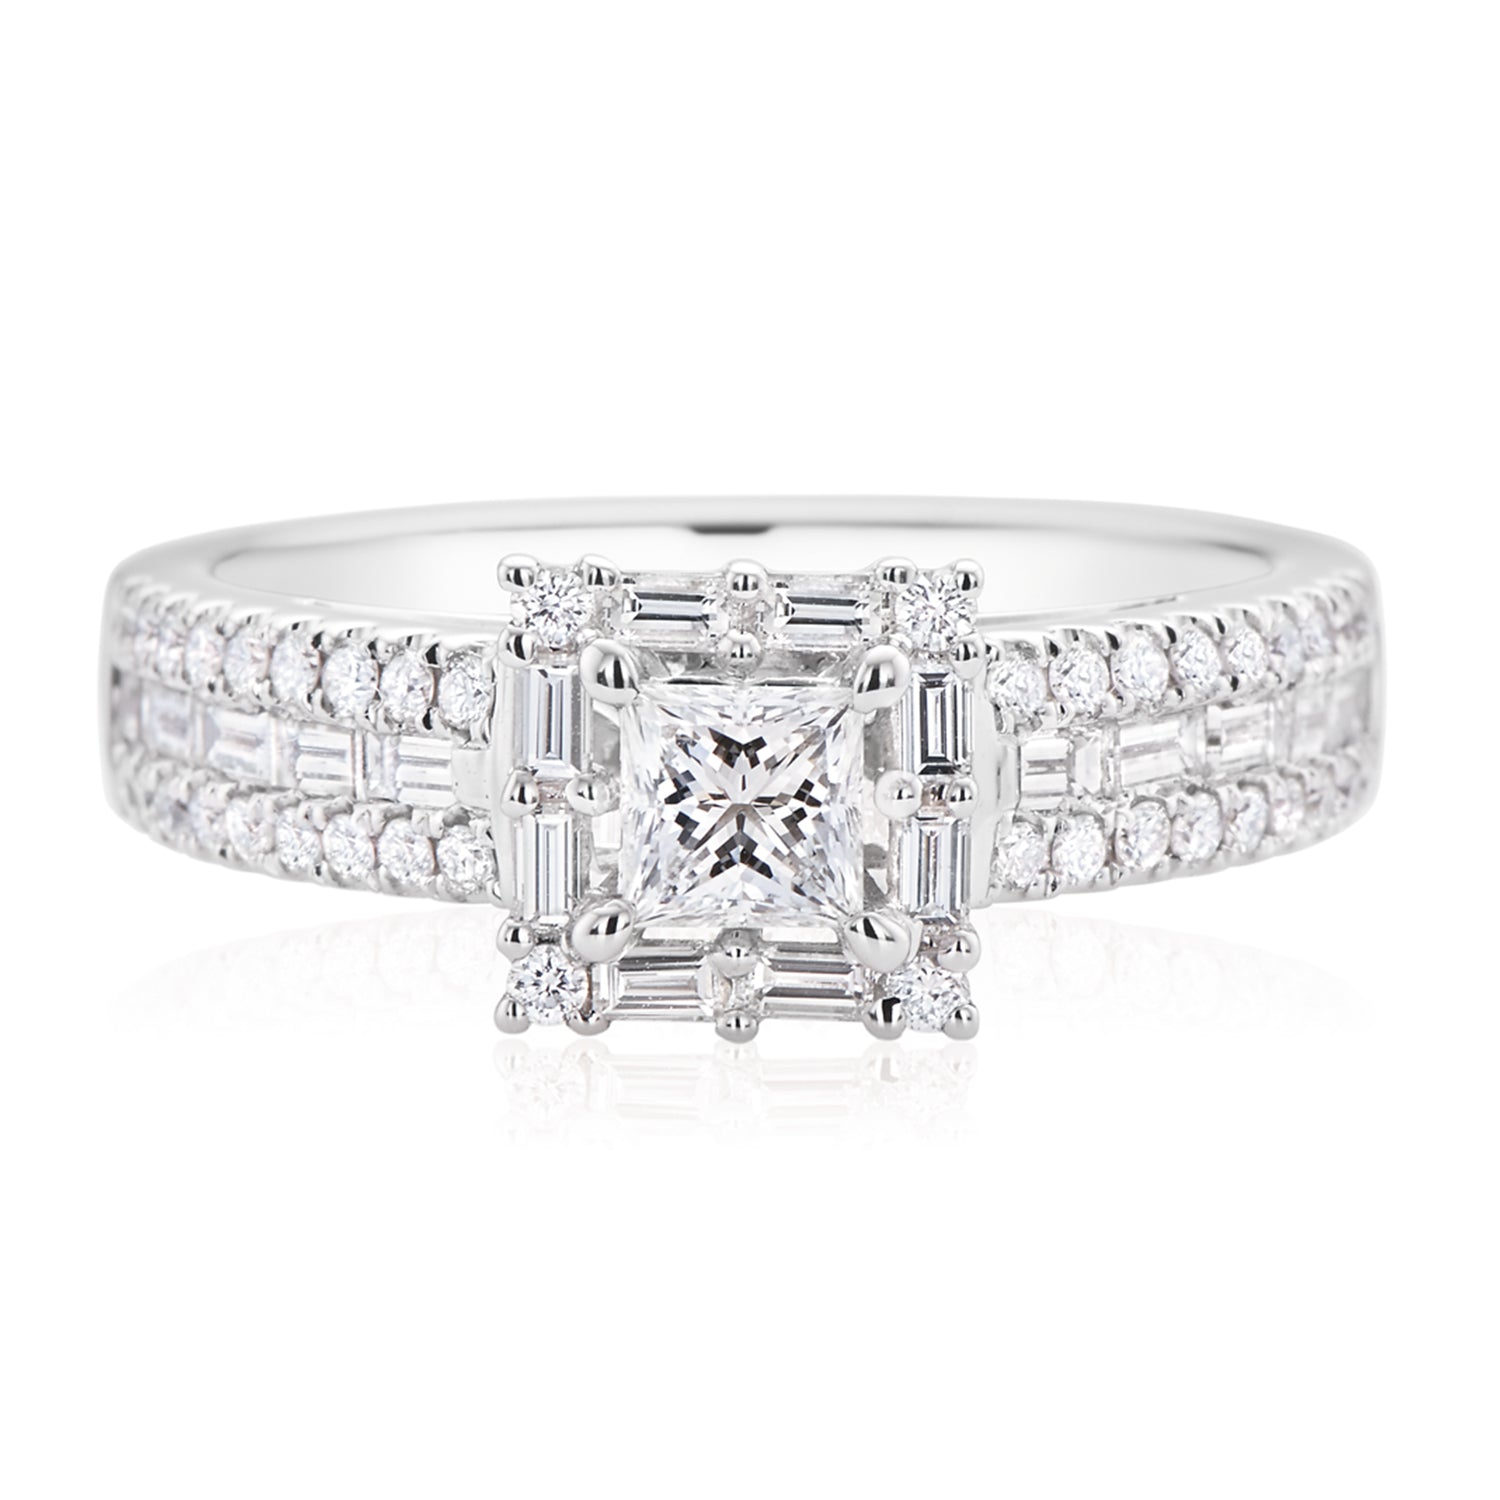 Rand 18ct White Gold Princess Cut with 1.15 CARAT tw of Diamonds